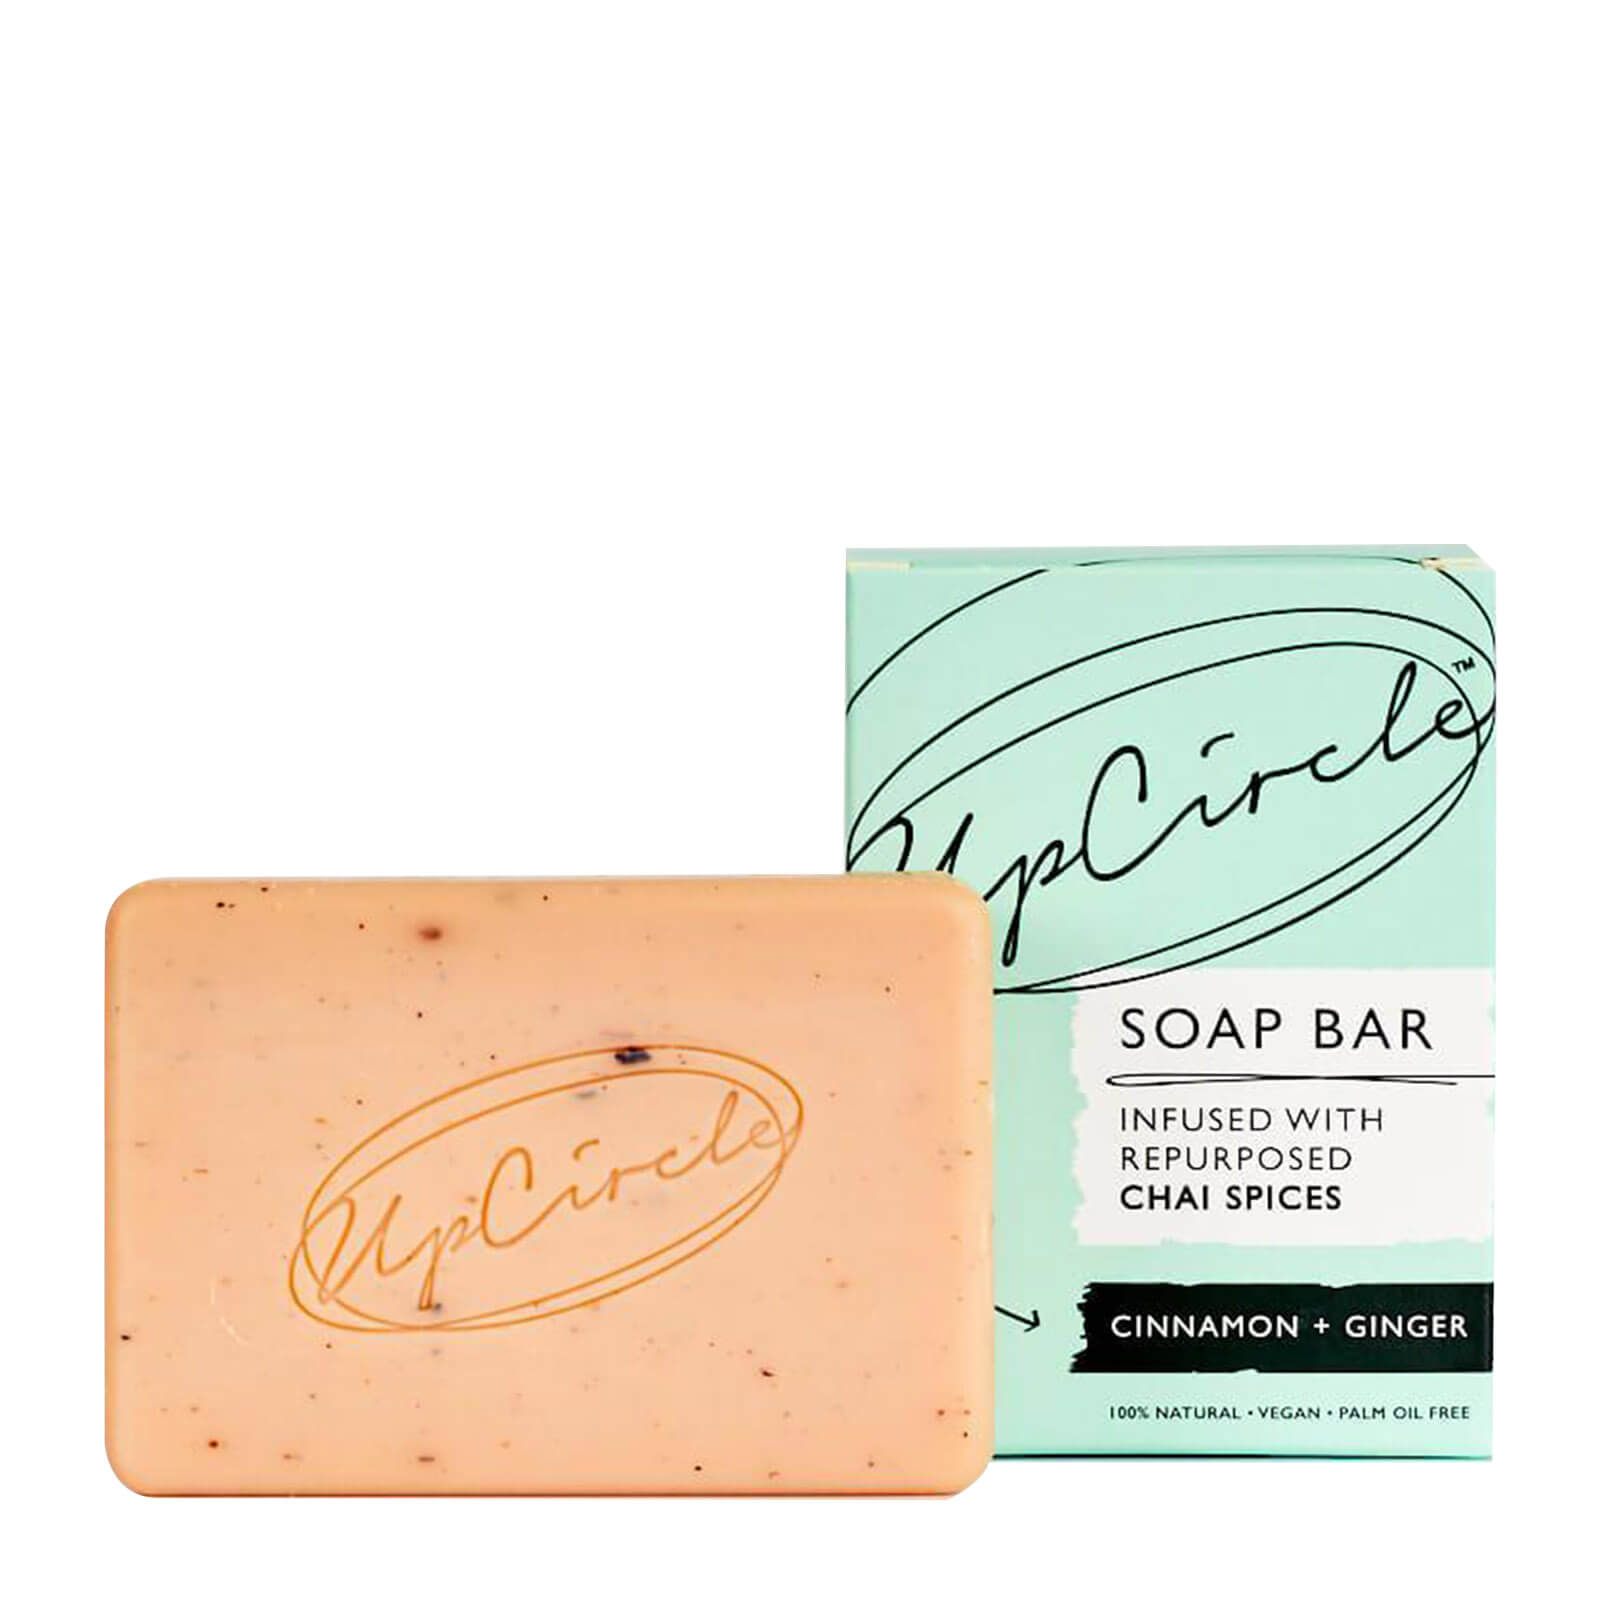 Upcircle Beauty Cinnamon & Ginger Chai Soap Bar